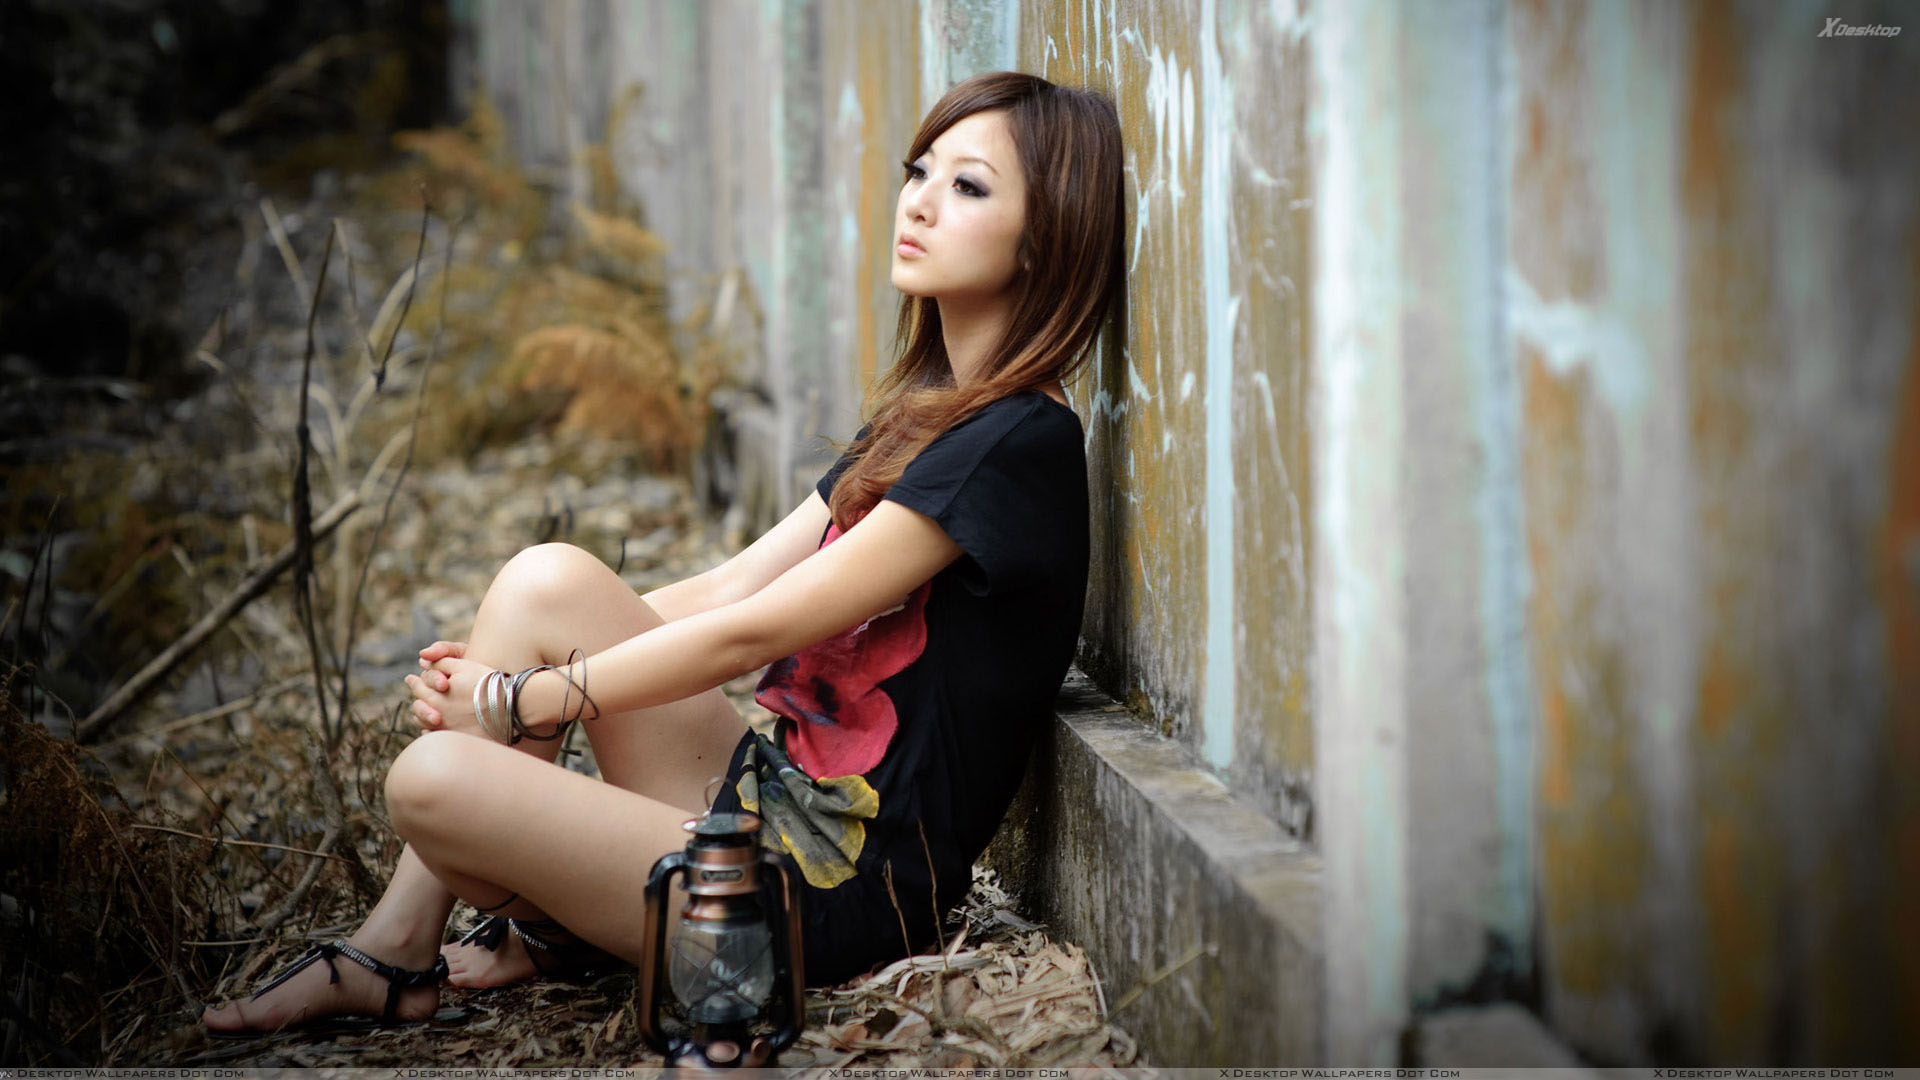 Love Wallpaper Sad Girl : Girl Lost In Love Sitting Pose in Black Top Wallpaper